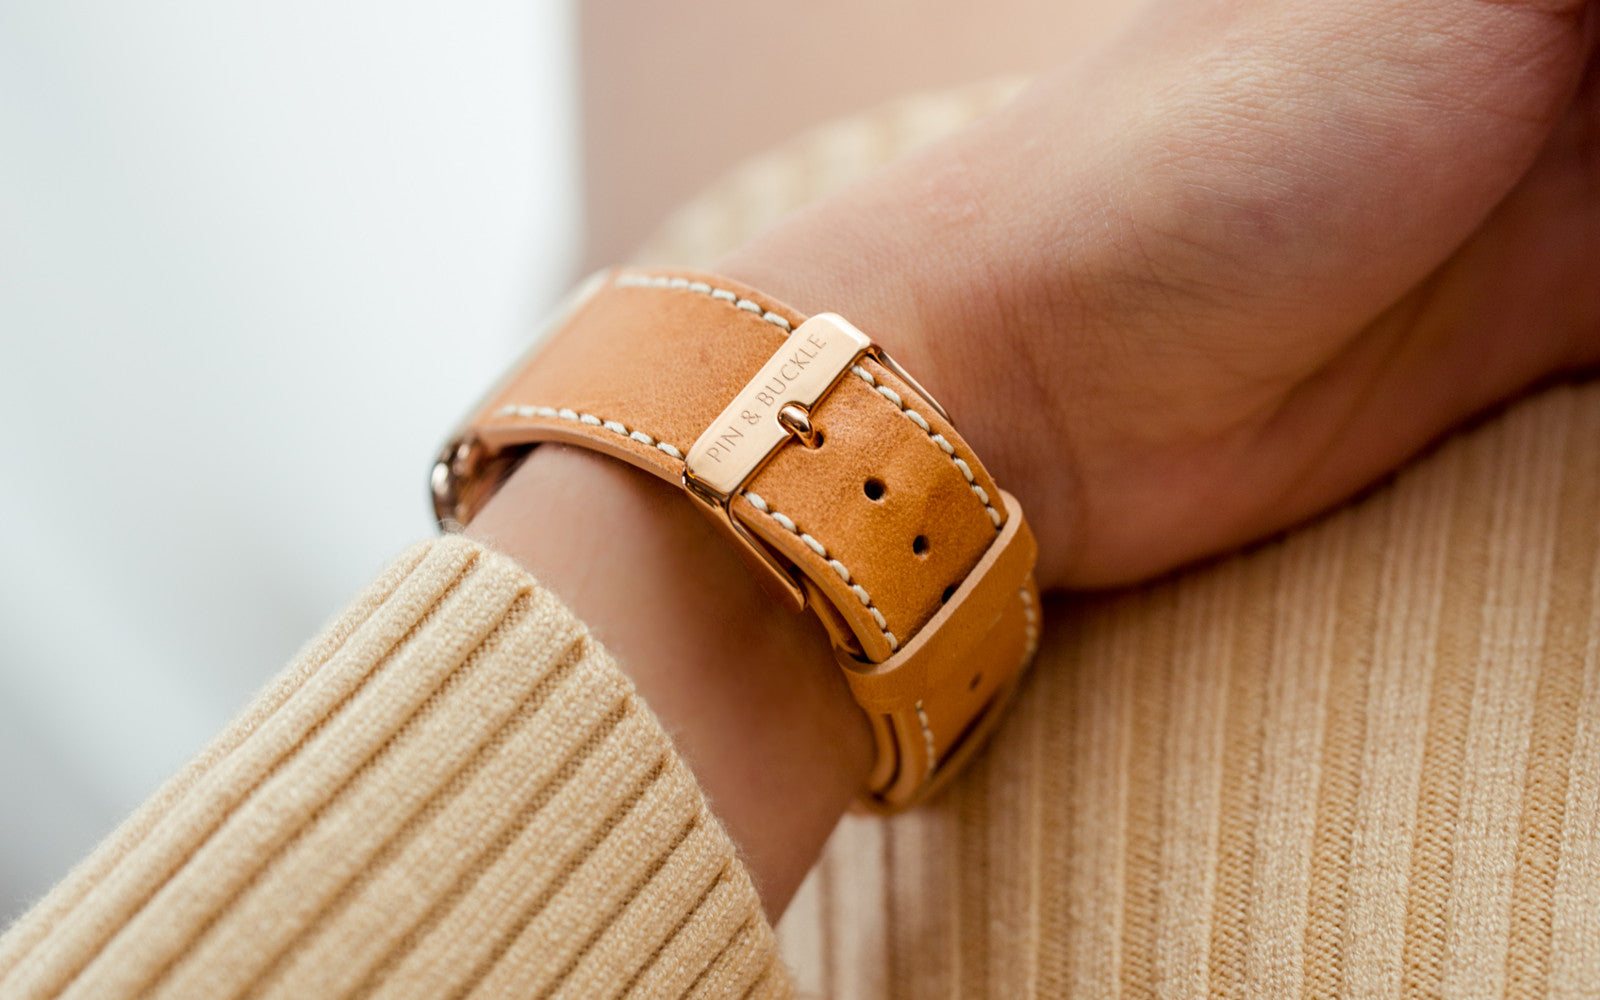 Vachetta Leather Apple Watch Band by Pin & Buckle